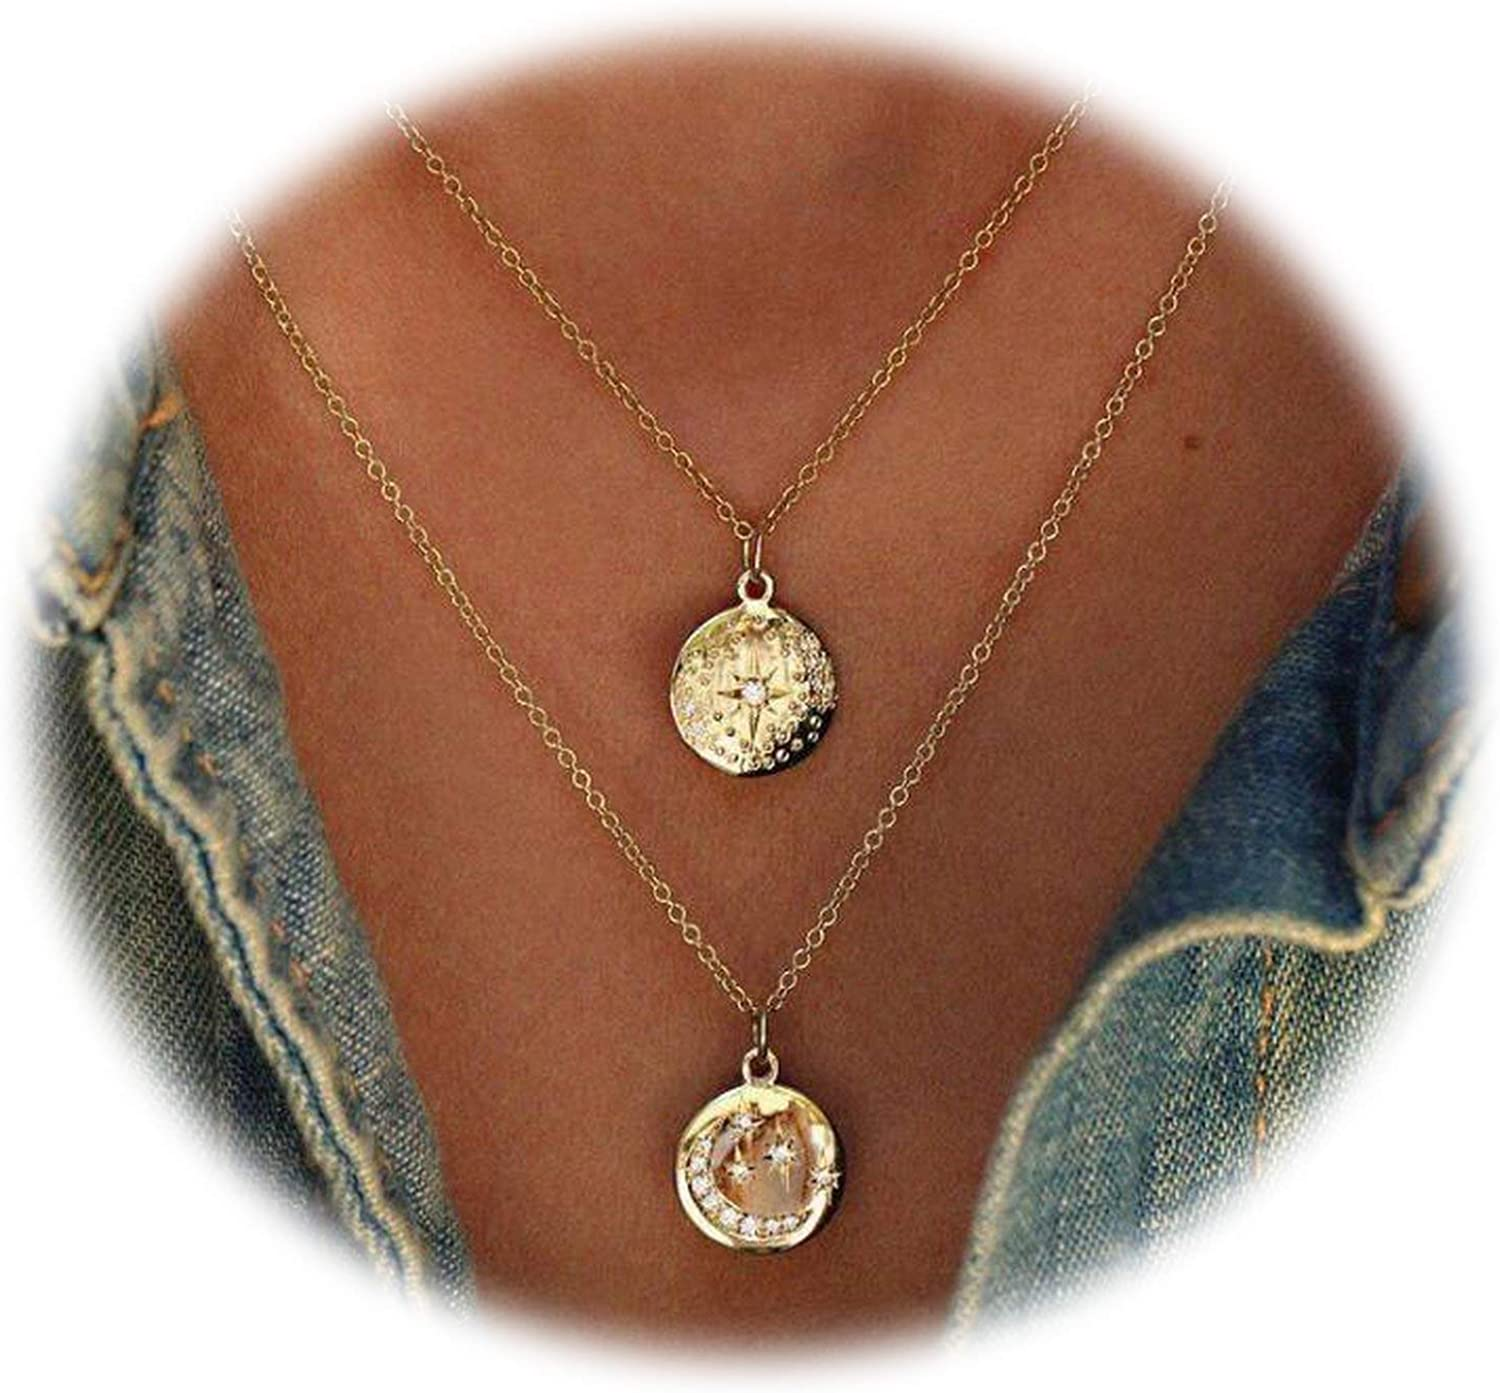 Trendy Women Gold Geometric Necklaces /& Pendants Statement Necklace with Pendant for Women Chocker Necklaces Boho Jewelry